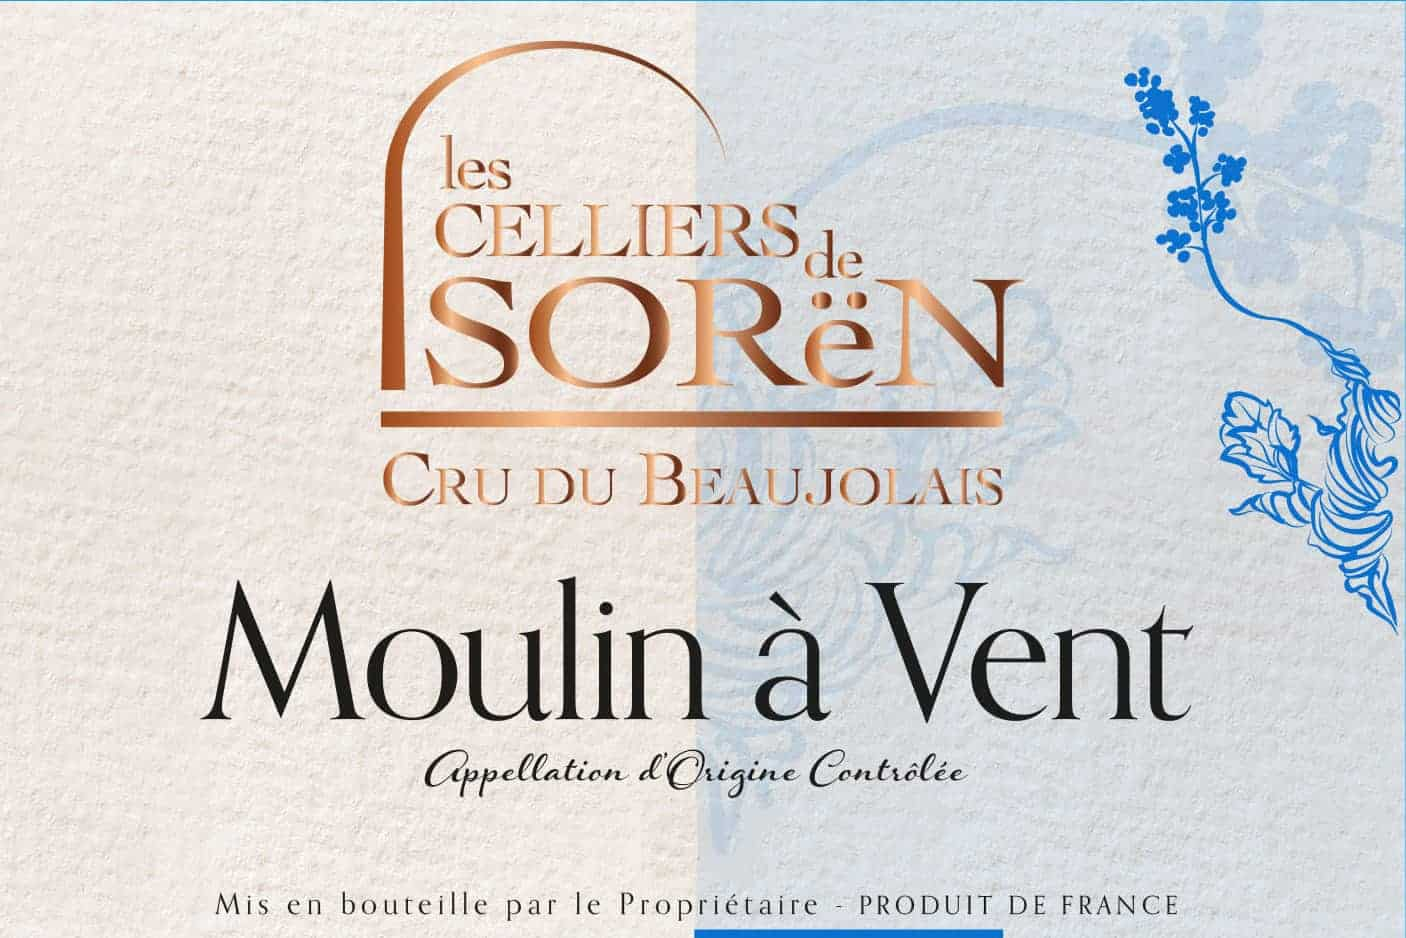 Label of Les Celliers de Sorën Moulin à Vent wine from Beaujolais